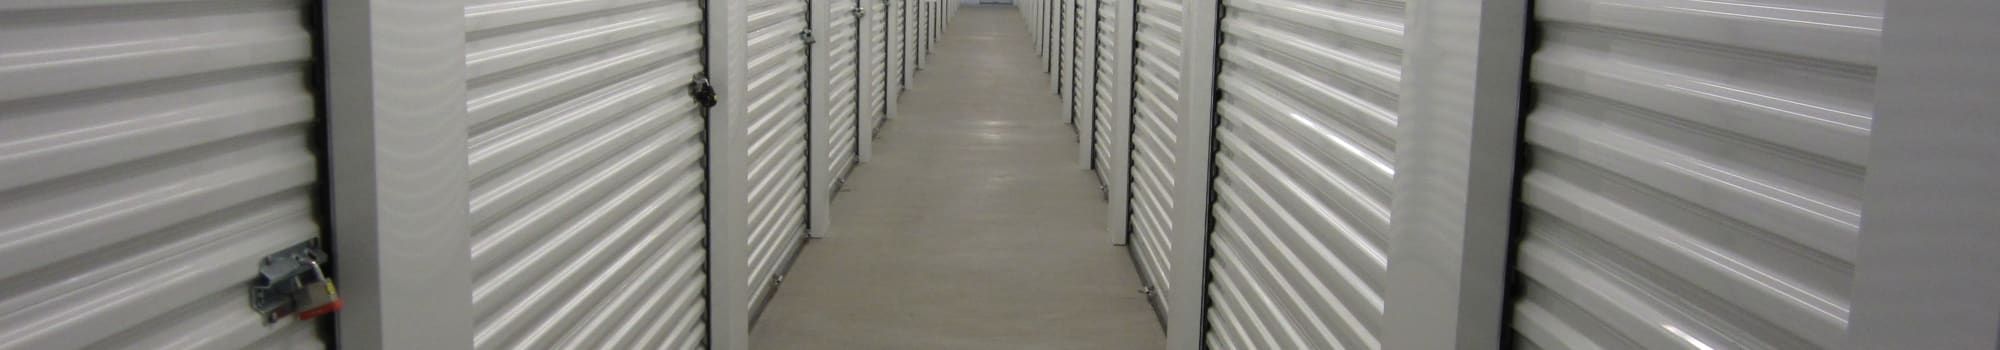 Absolute Self Storage storage solutions in Thousand Palms, California